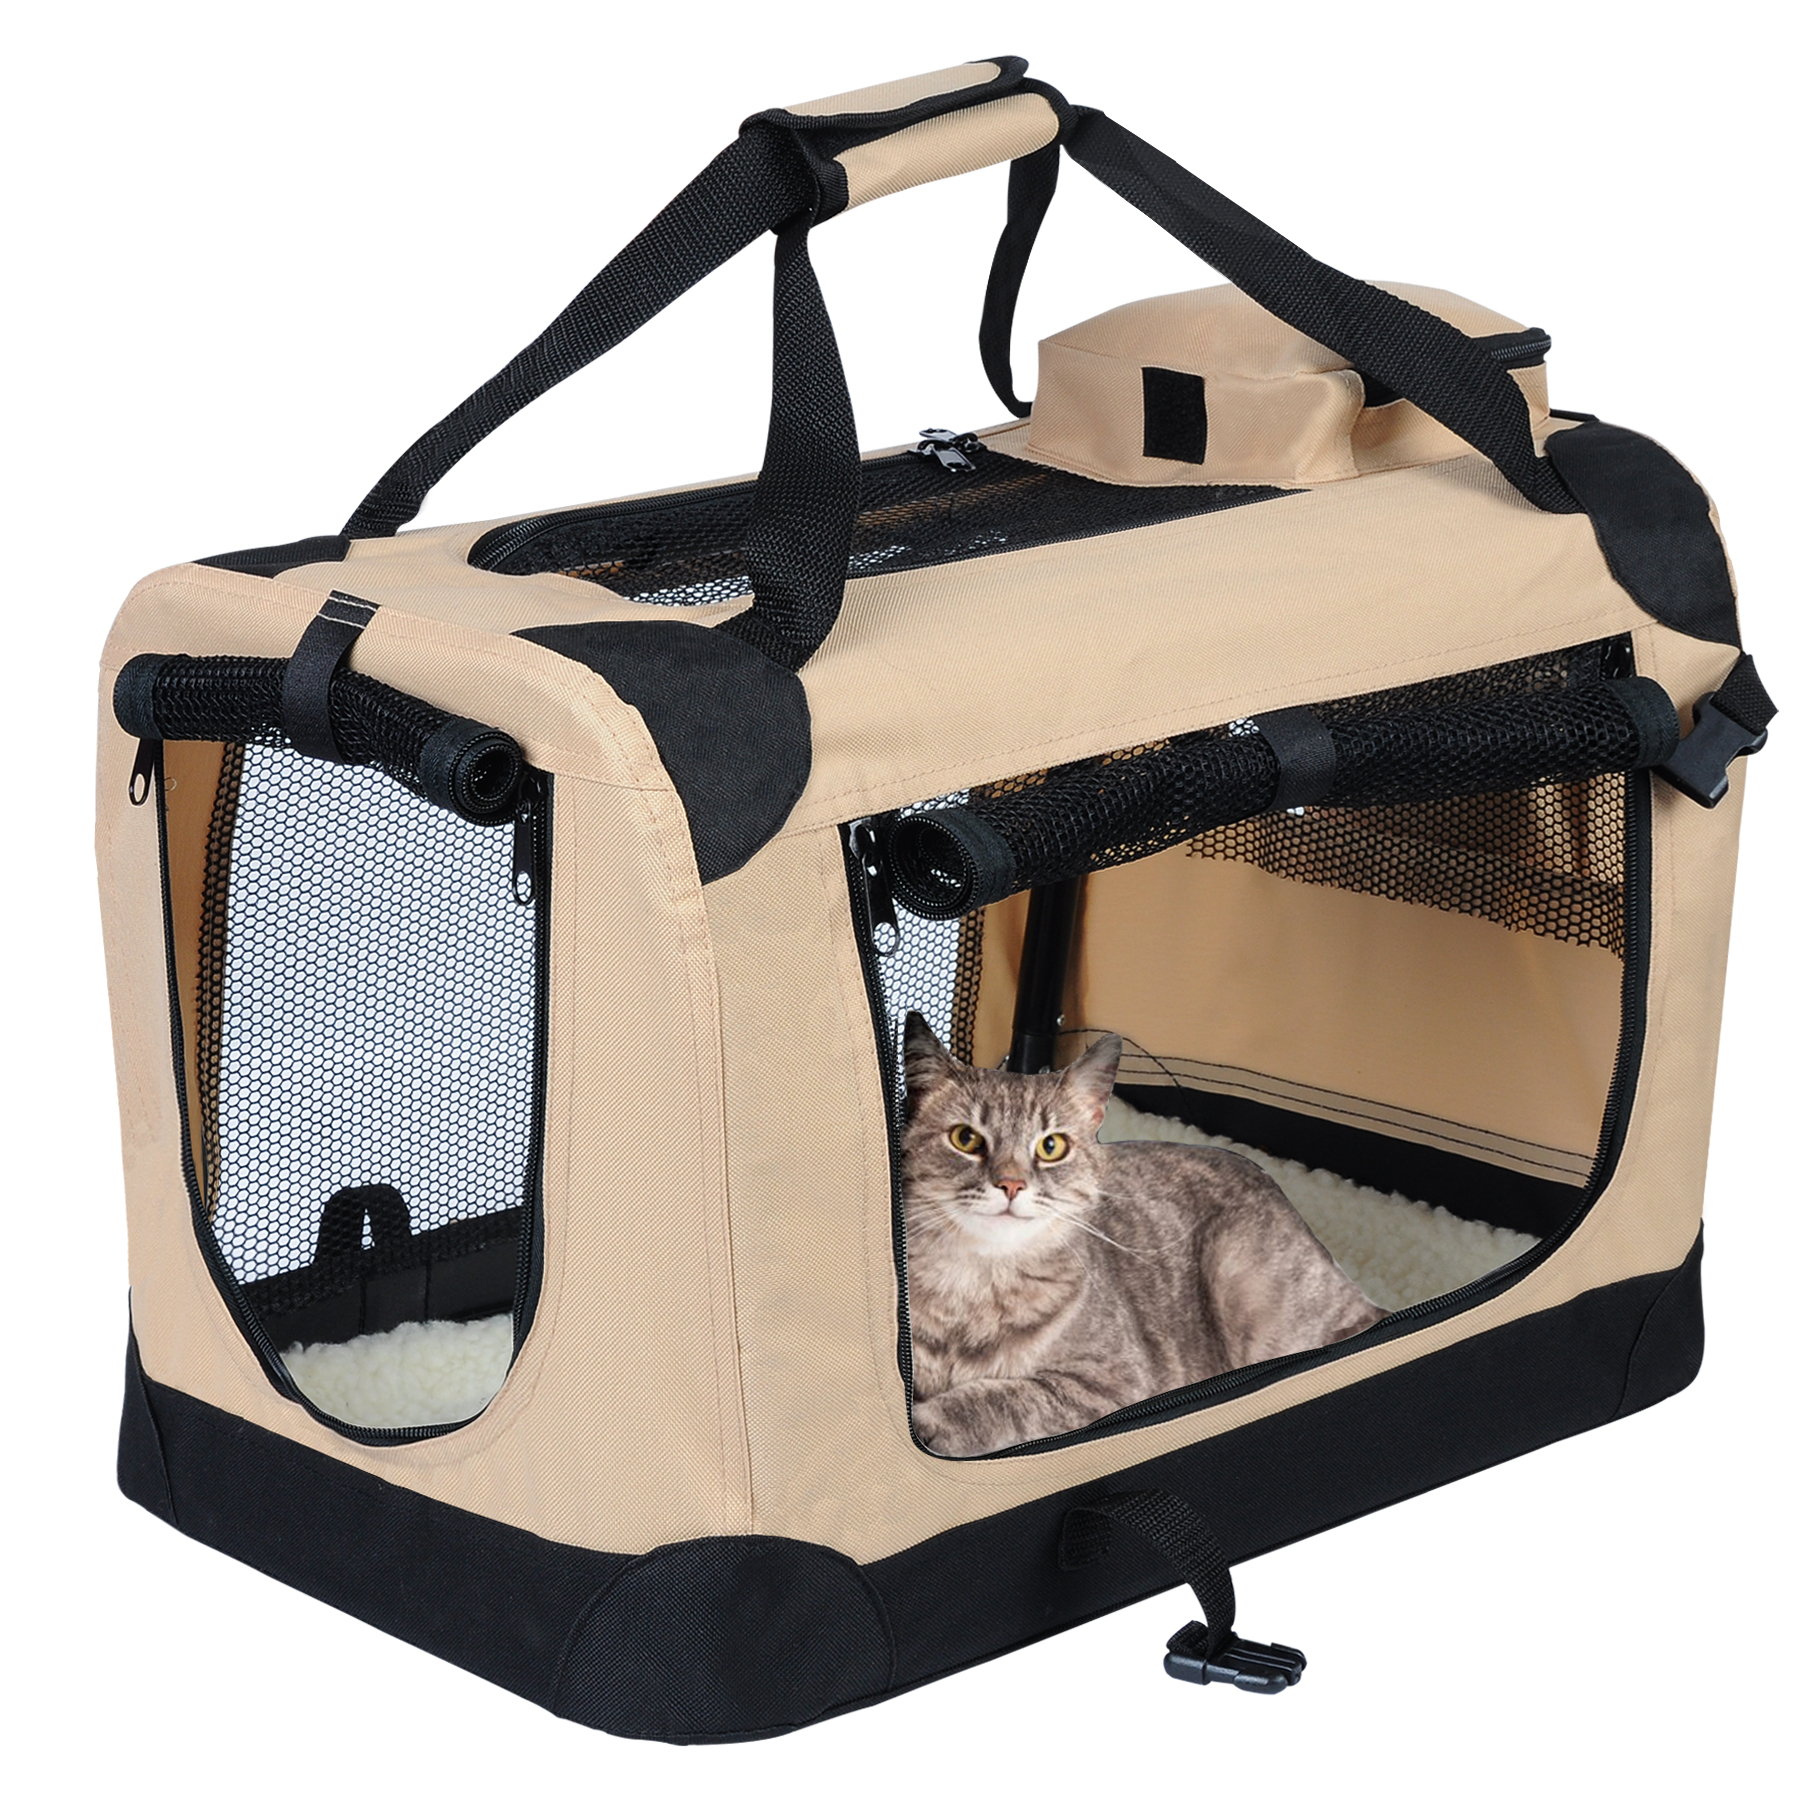 hundetransportbox f r auto hundebox katzenbox reisebox xl. Black Bedroom Furniture Sets. Home Design Ideas